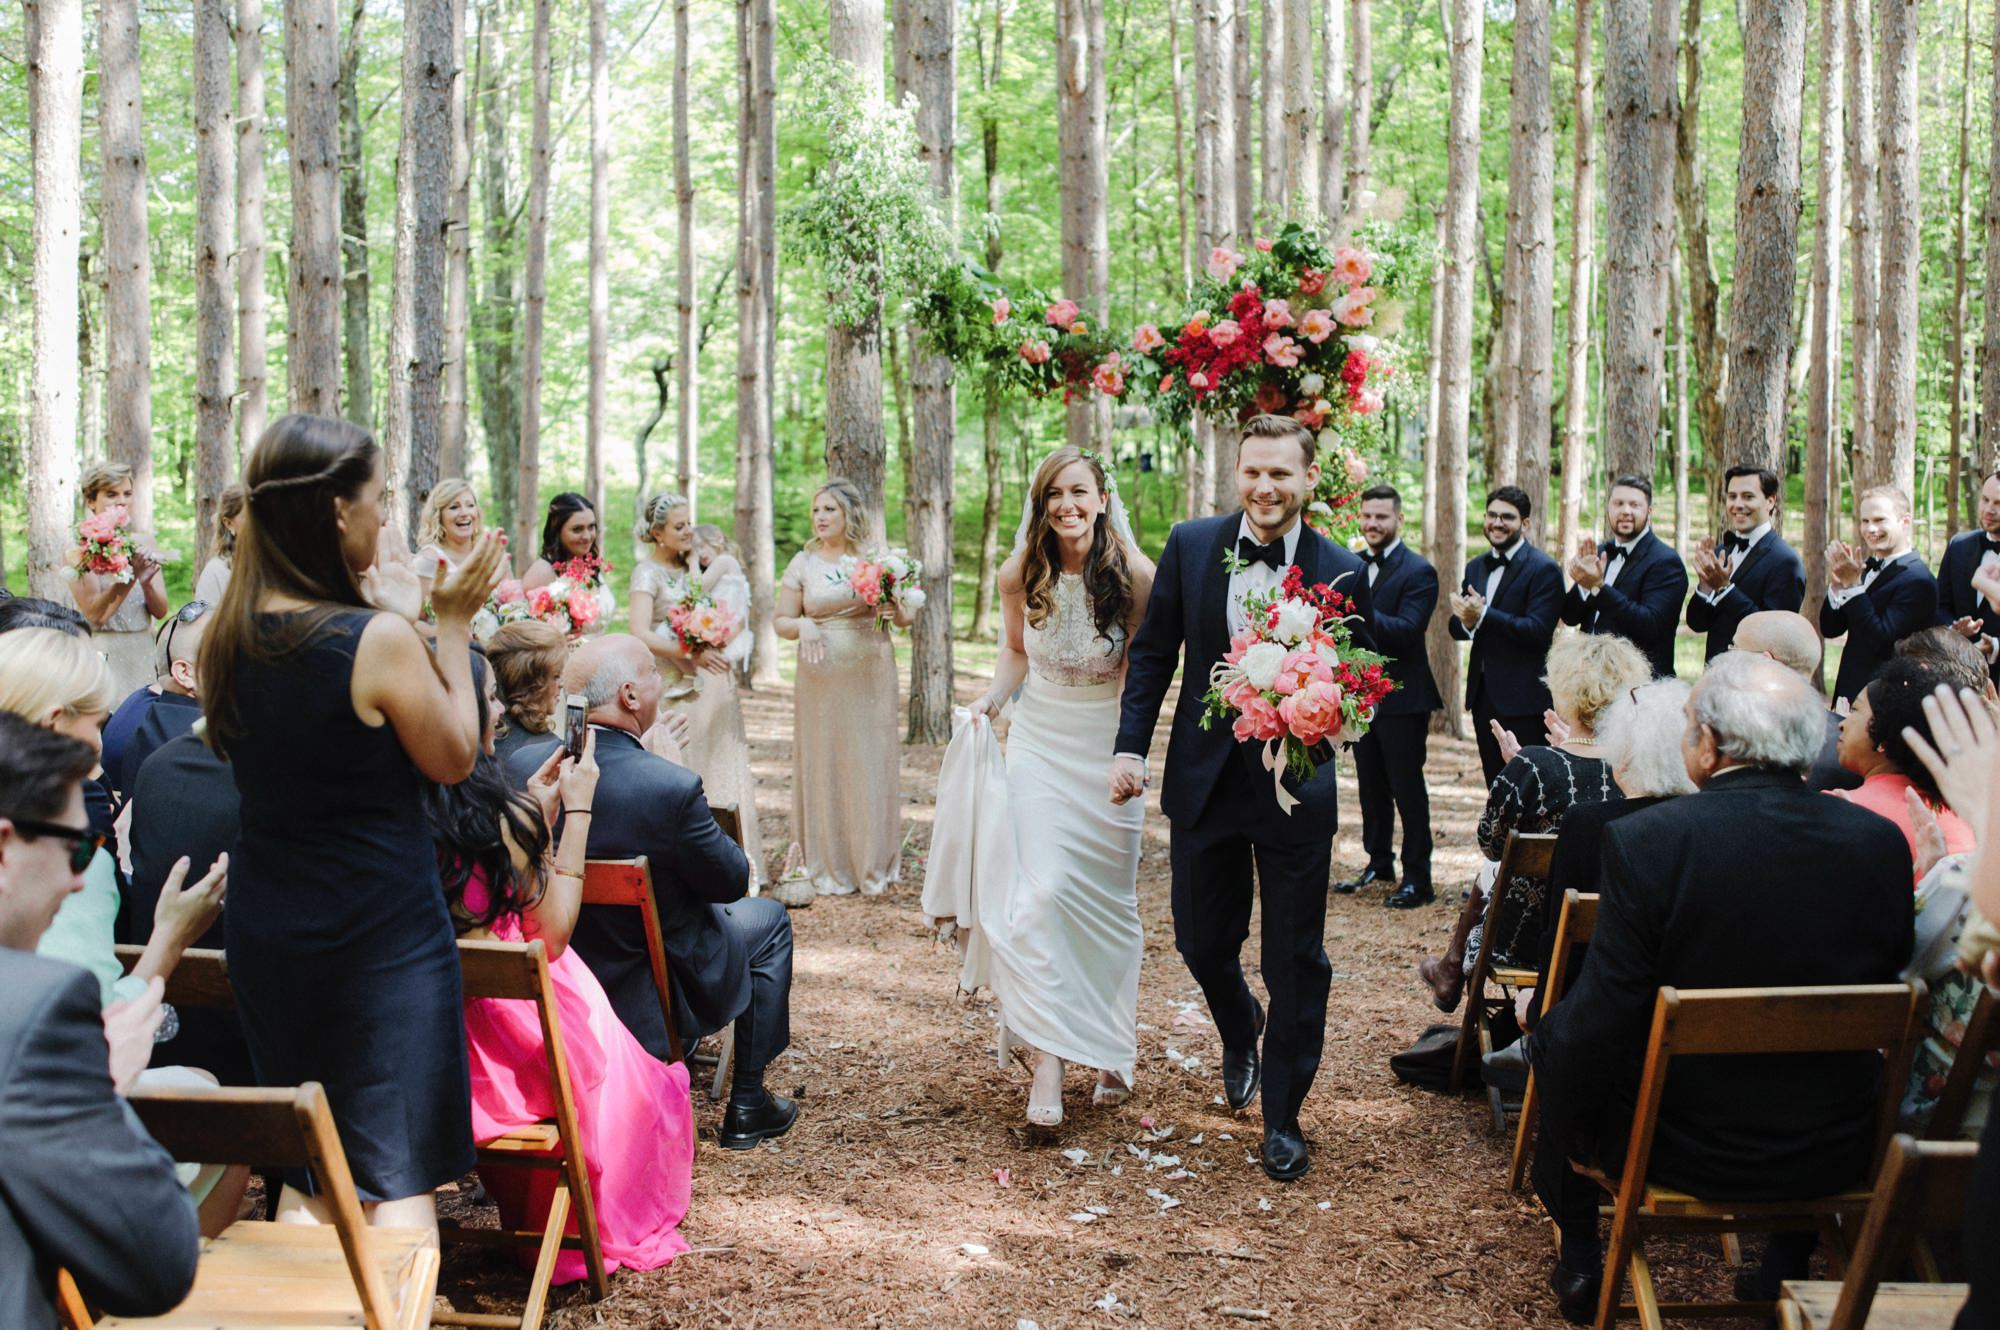 bride and groom walking back down the aisle at the Pine Grove location at Roxbury Barn Estate in the Catskills New York